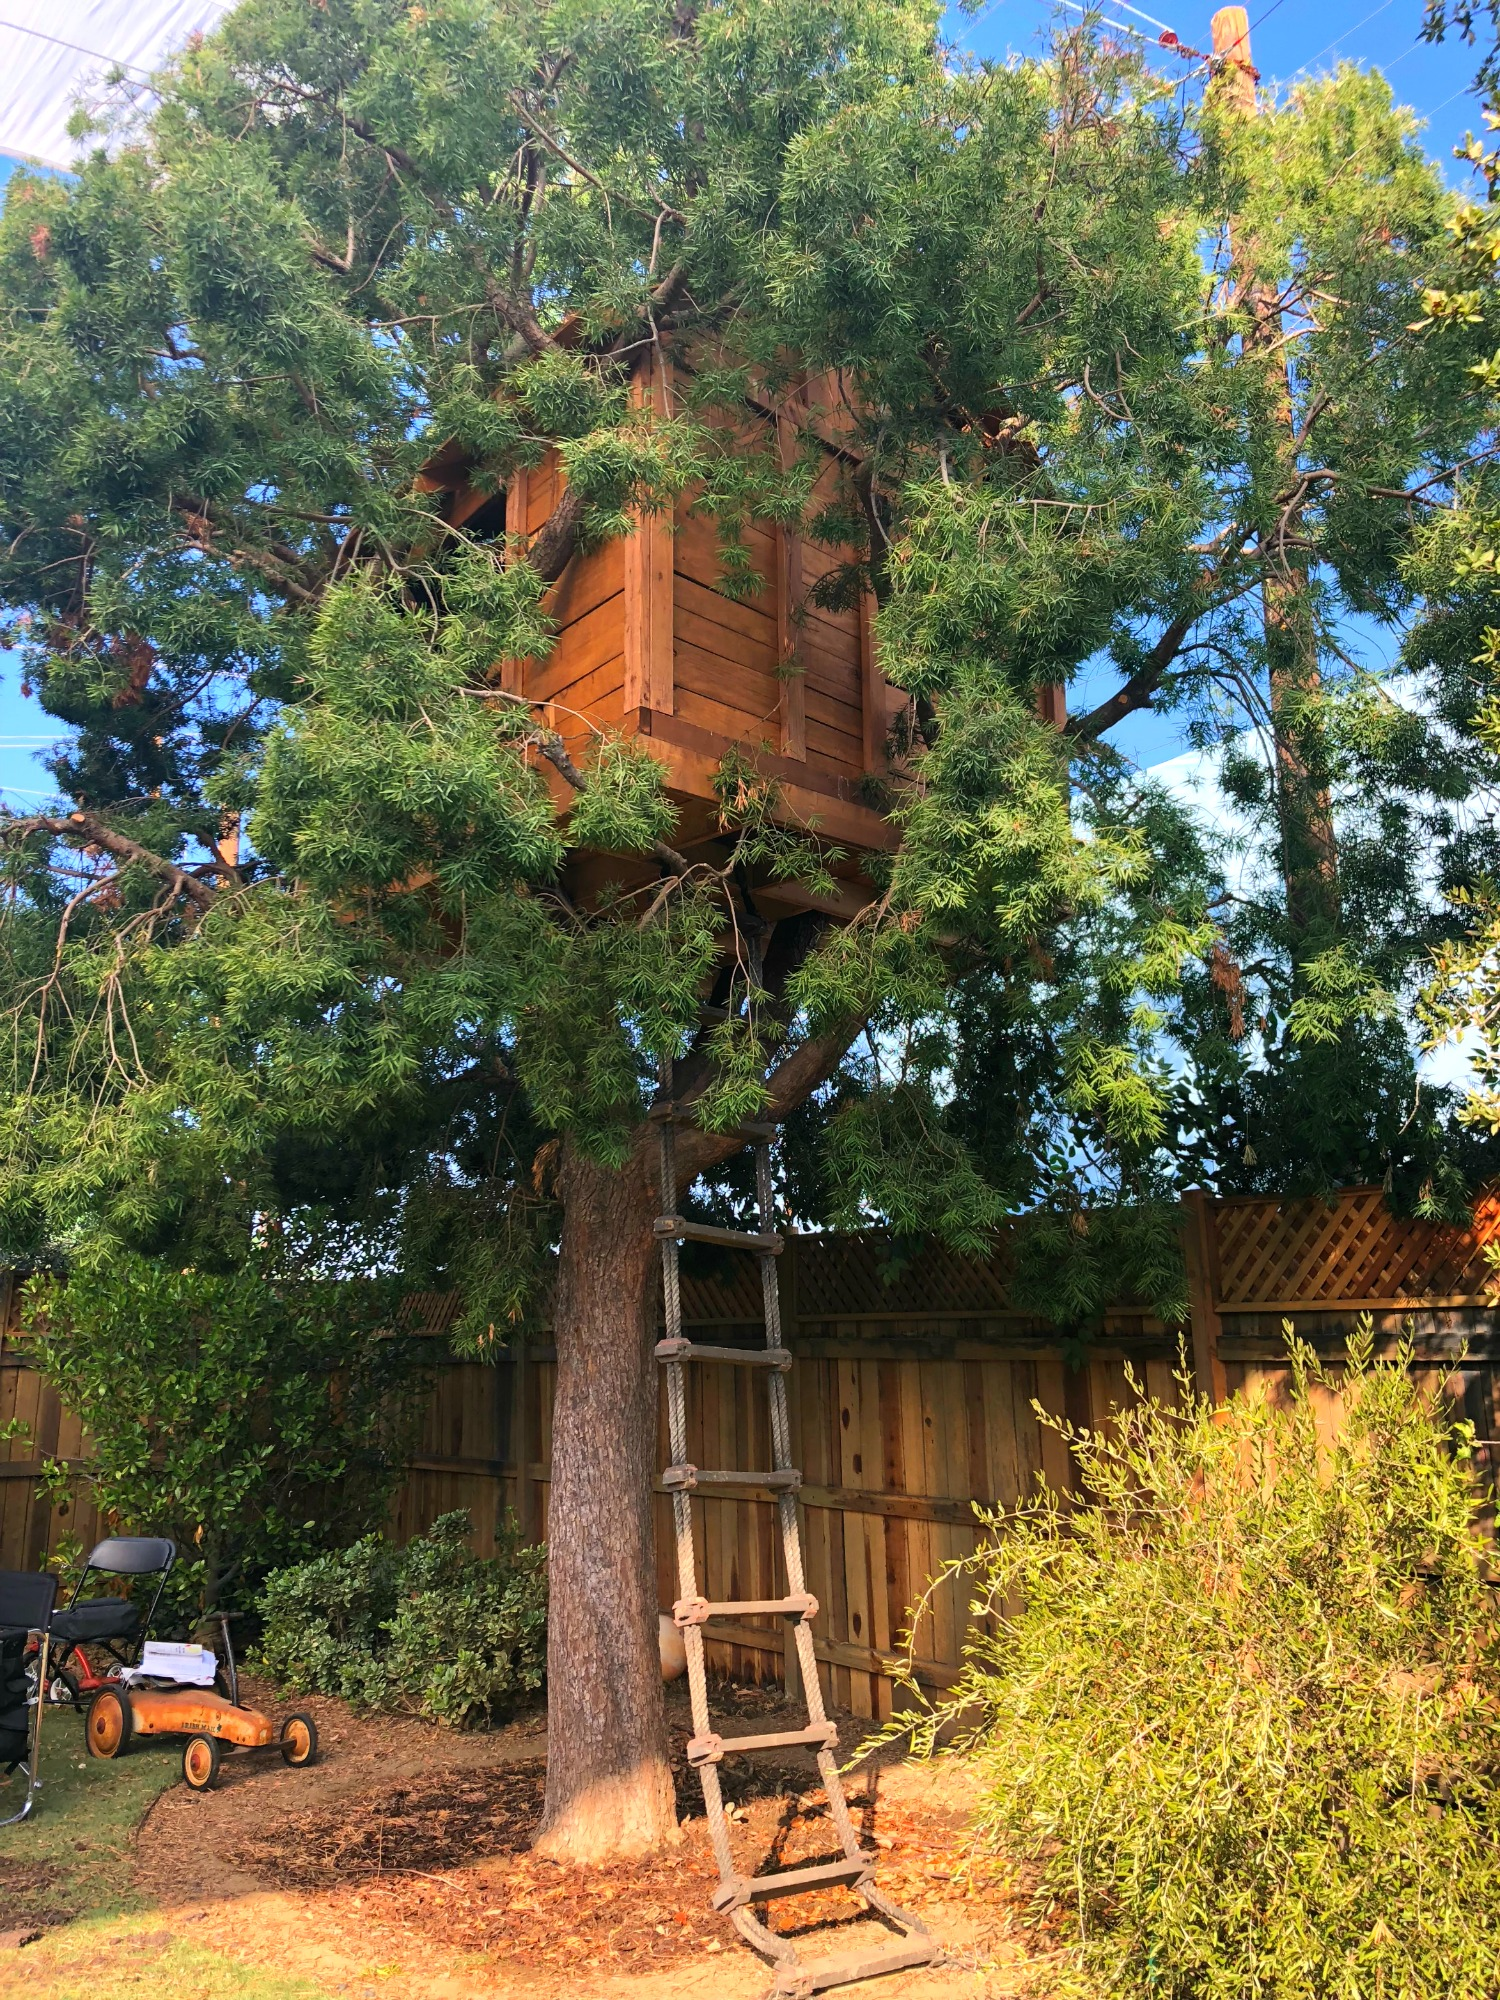 The Cleary's treehouse